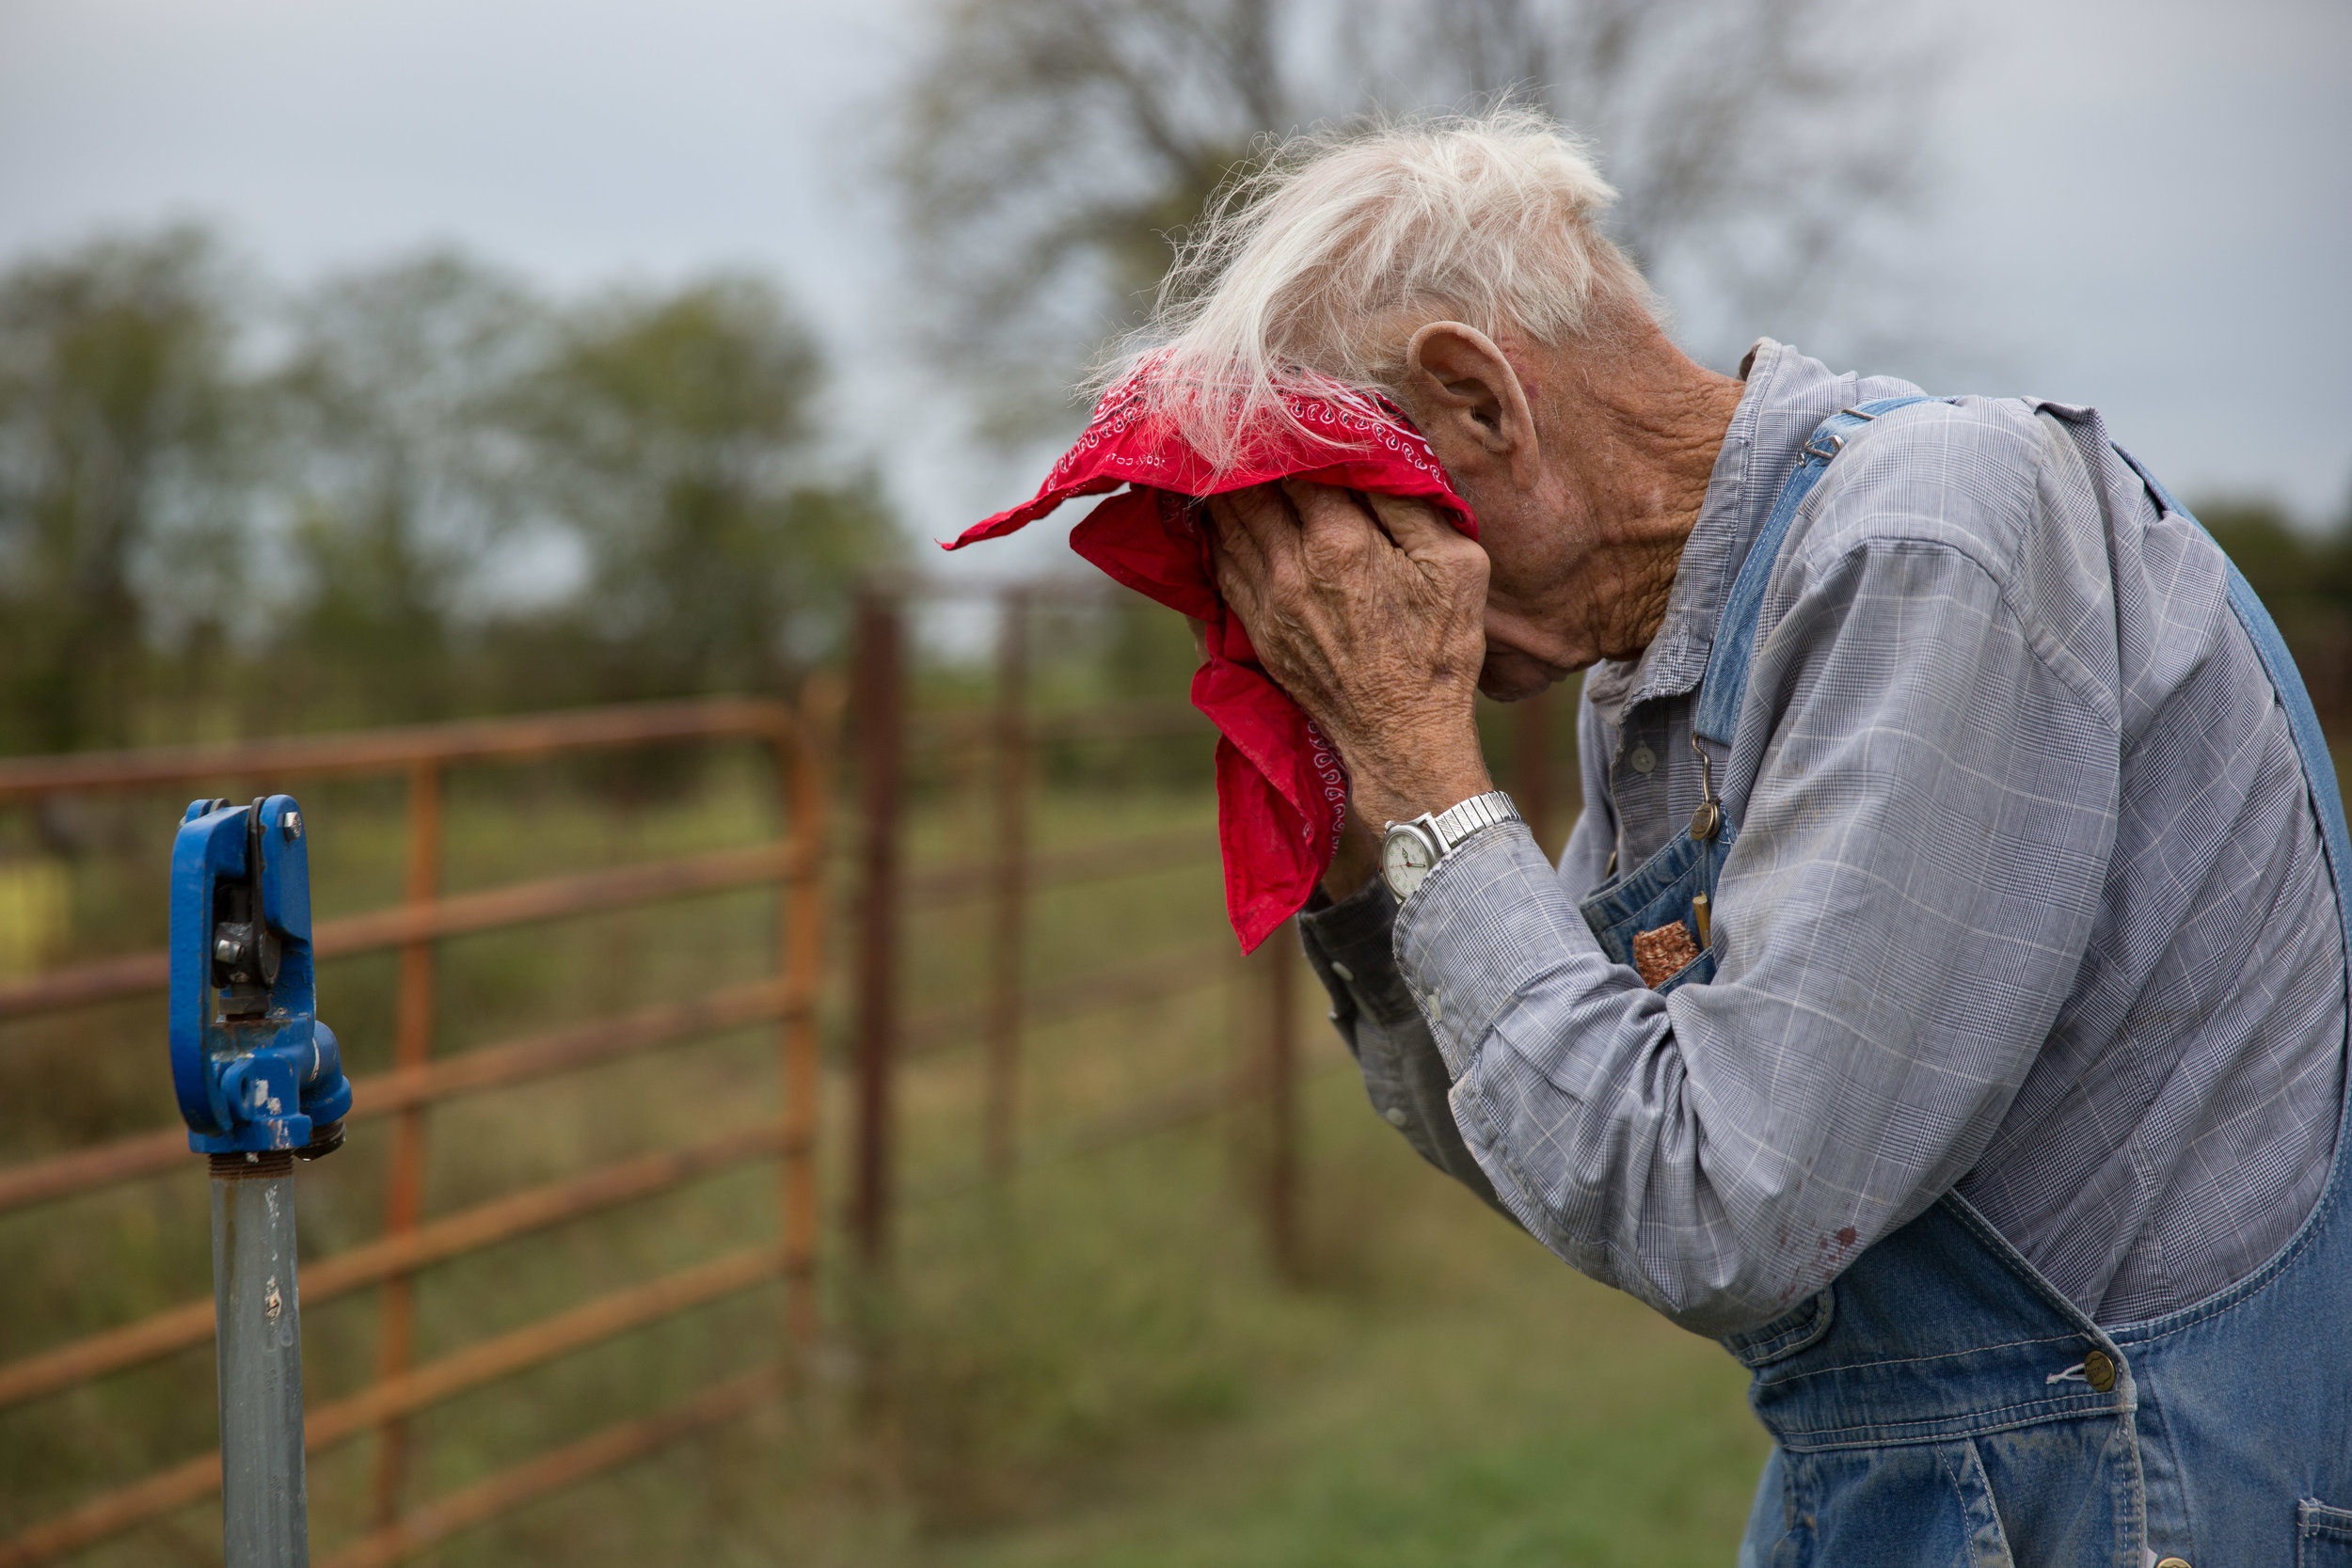 Carl takes a moment to clean his face after a dusty day of harvesting corn.